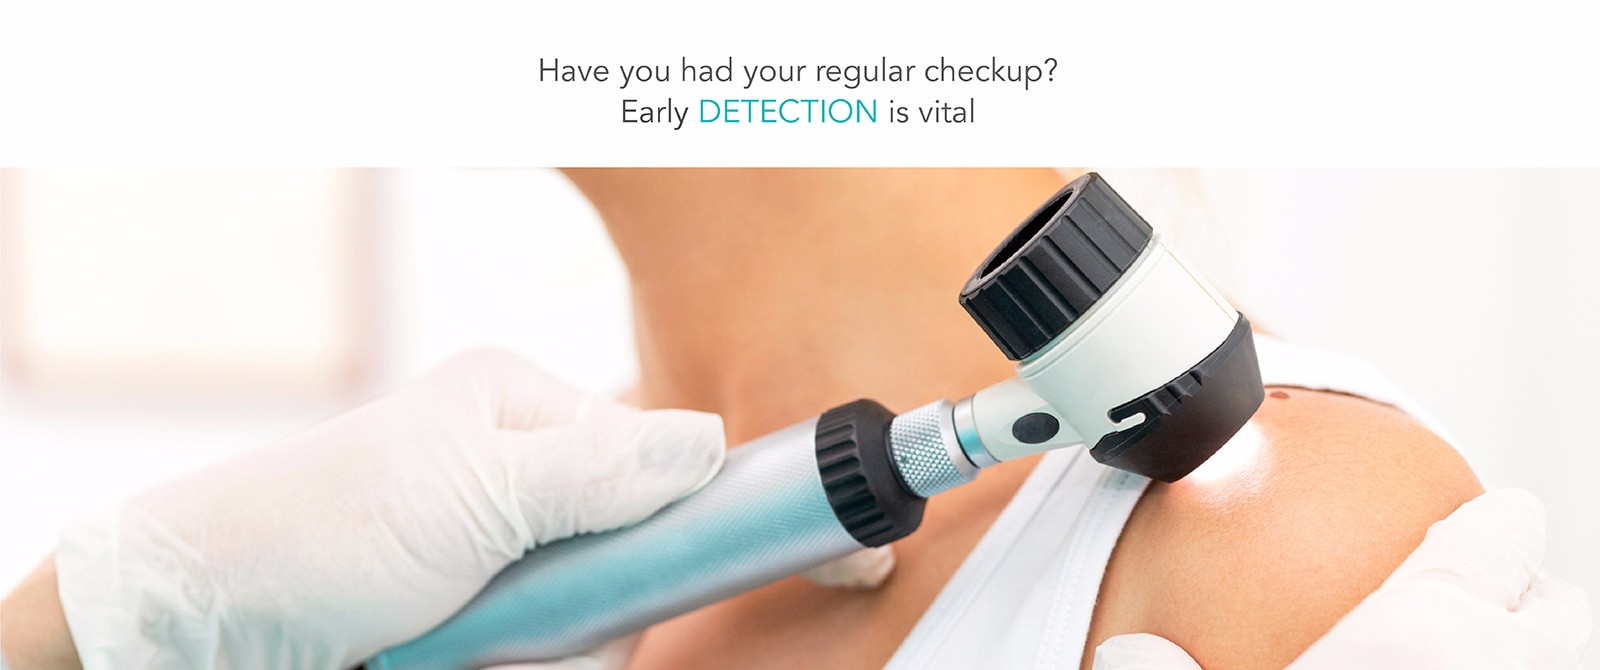 Dermatoscope Skin Checkup